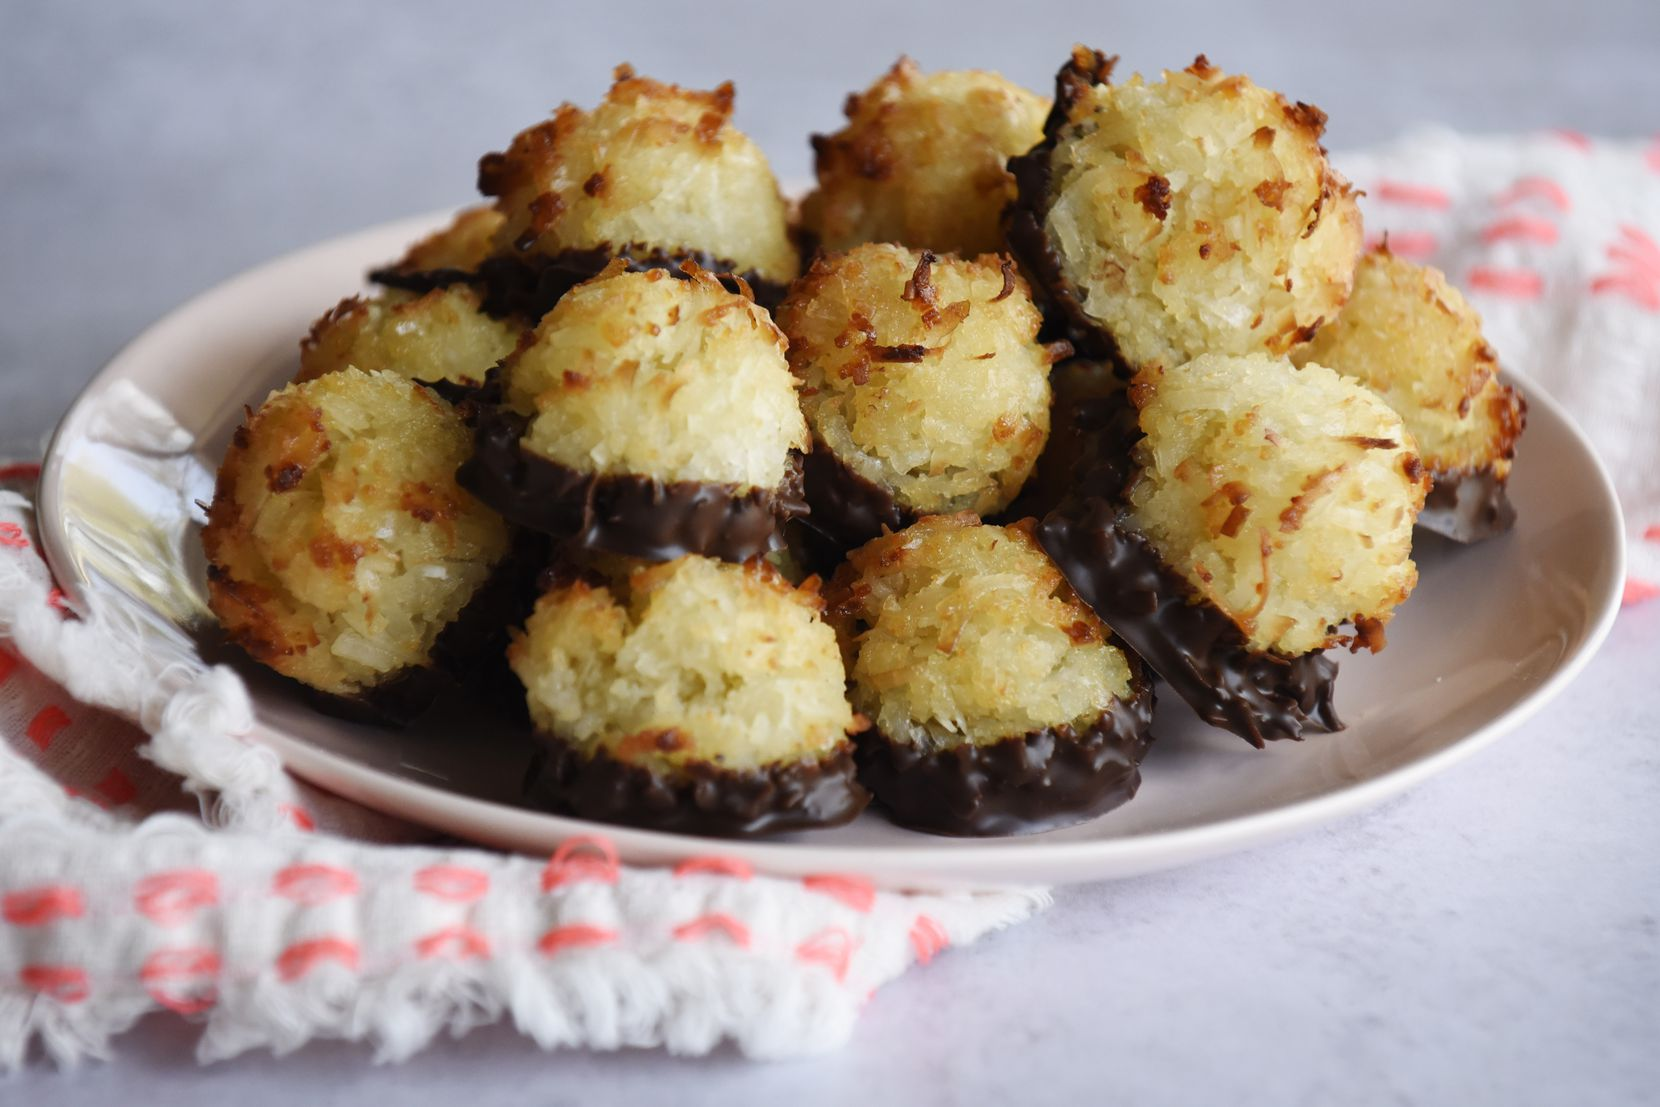 Coconut macaroons, from Kristen Massad, at her home in Dallas, March 11, 2020. Ben Torres/Special Contributor